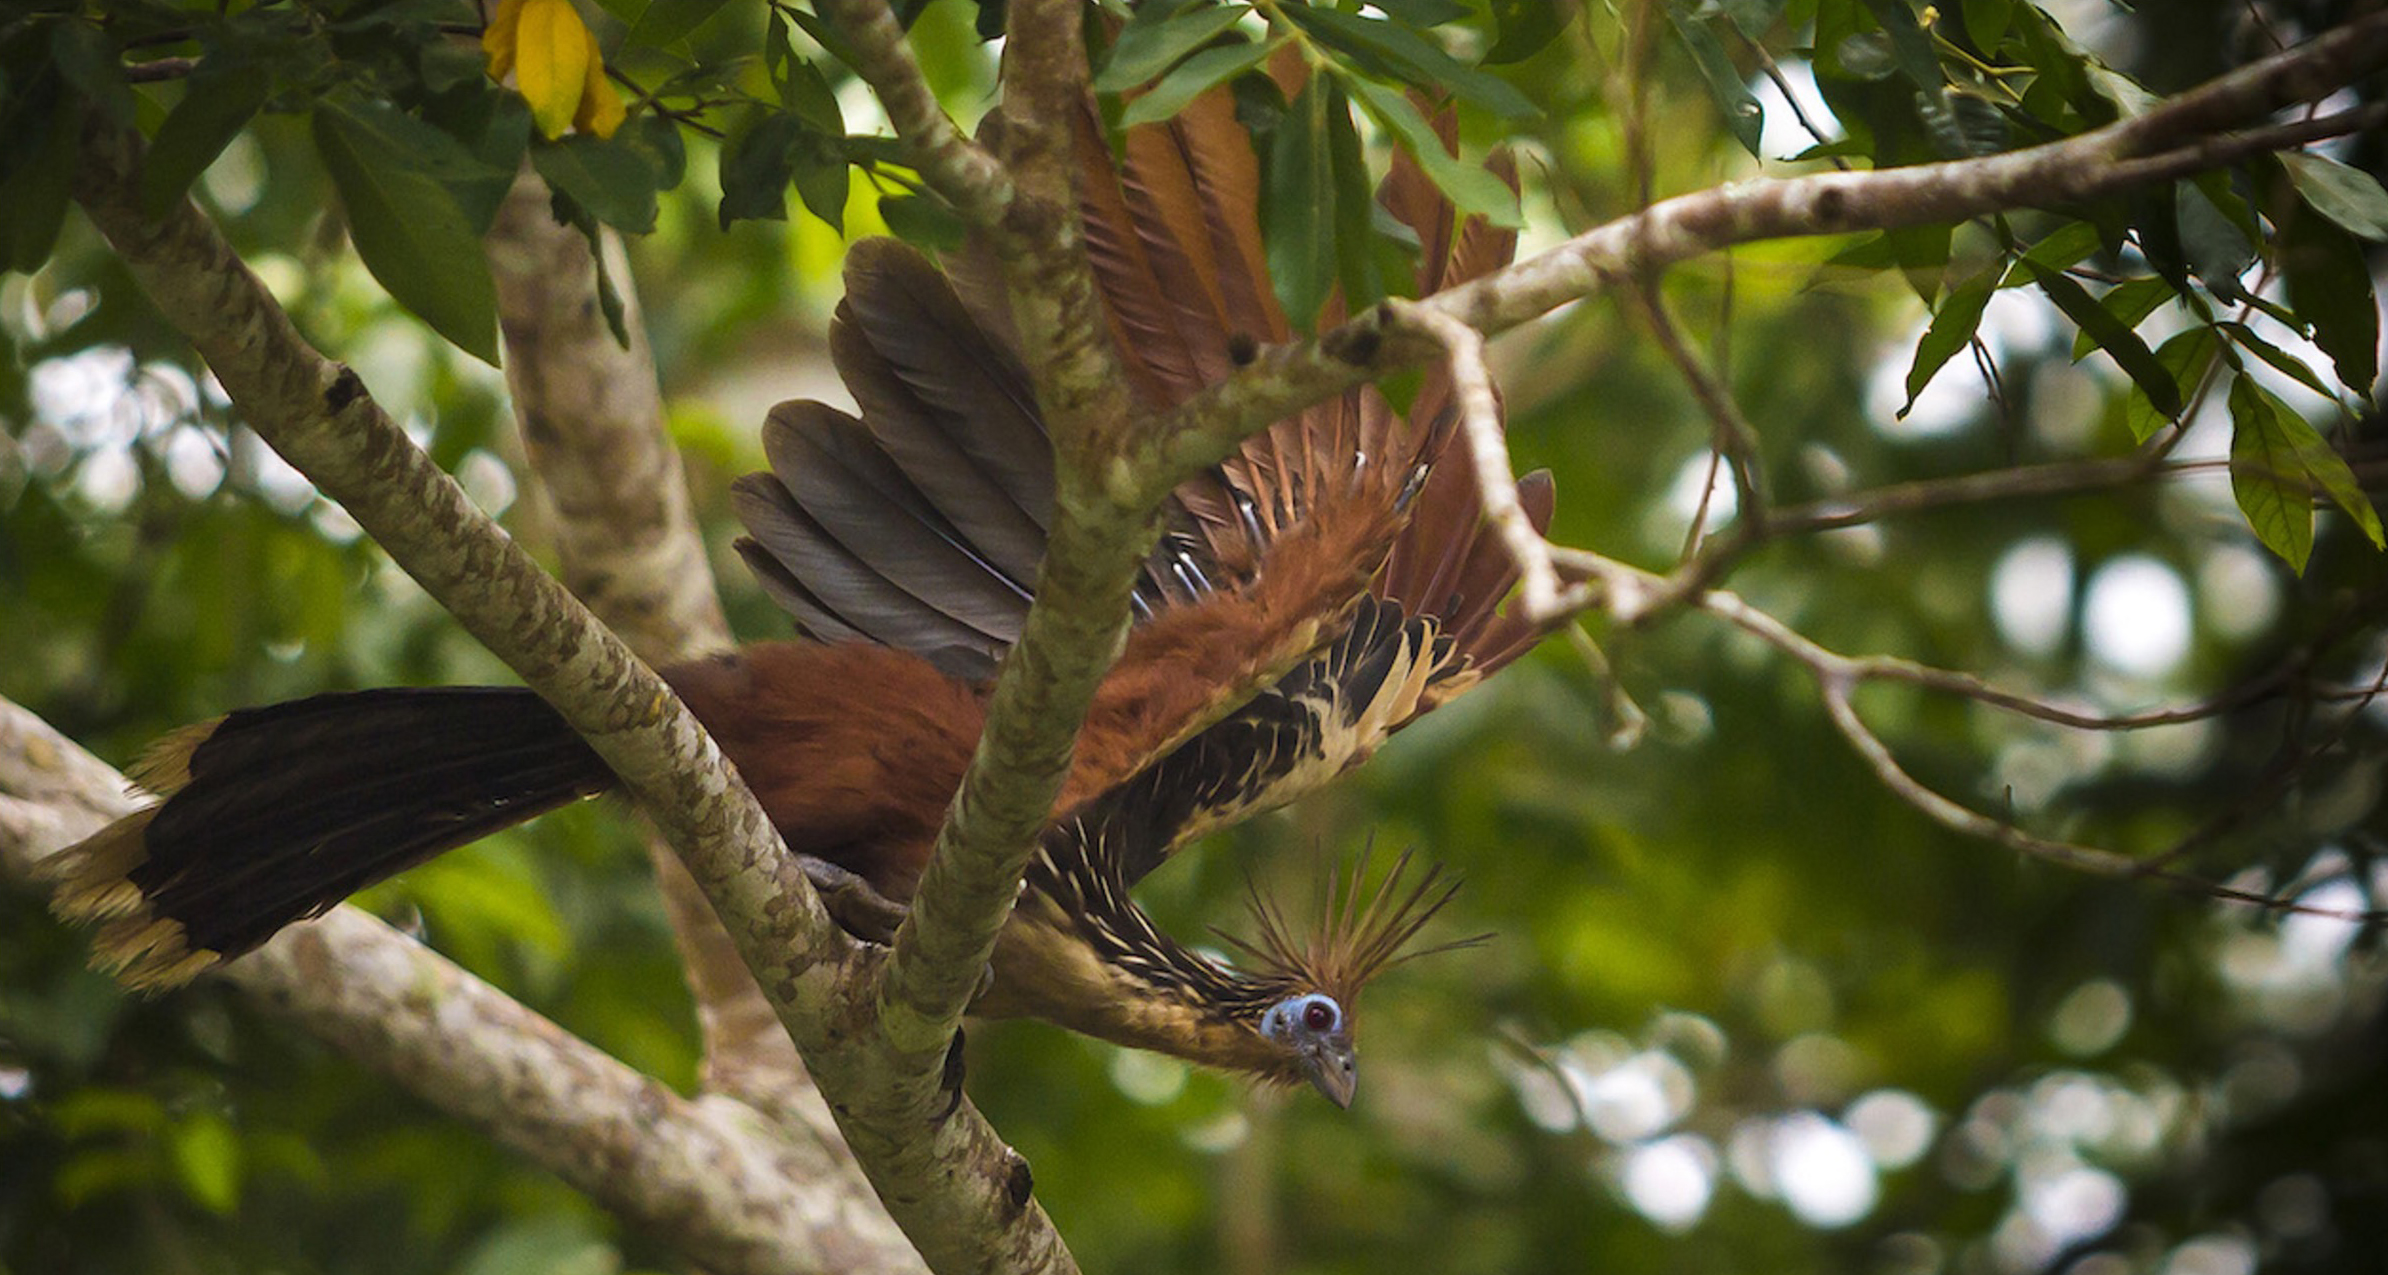 hoatzin-in-colombia-sierra-de-la-macarena-natural-national-park